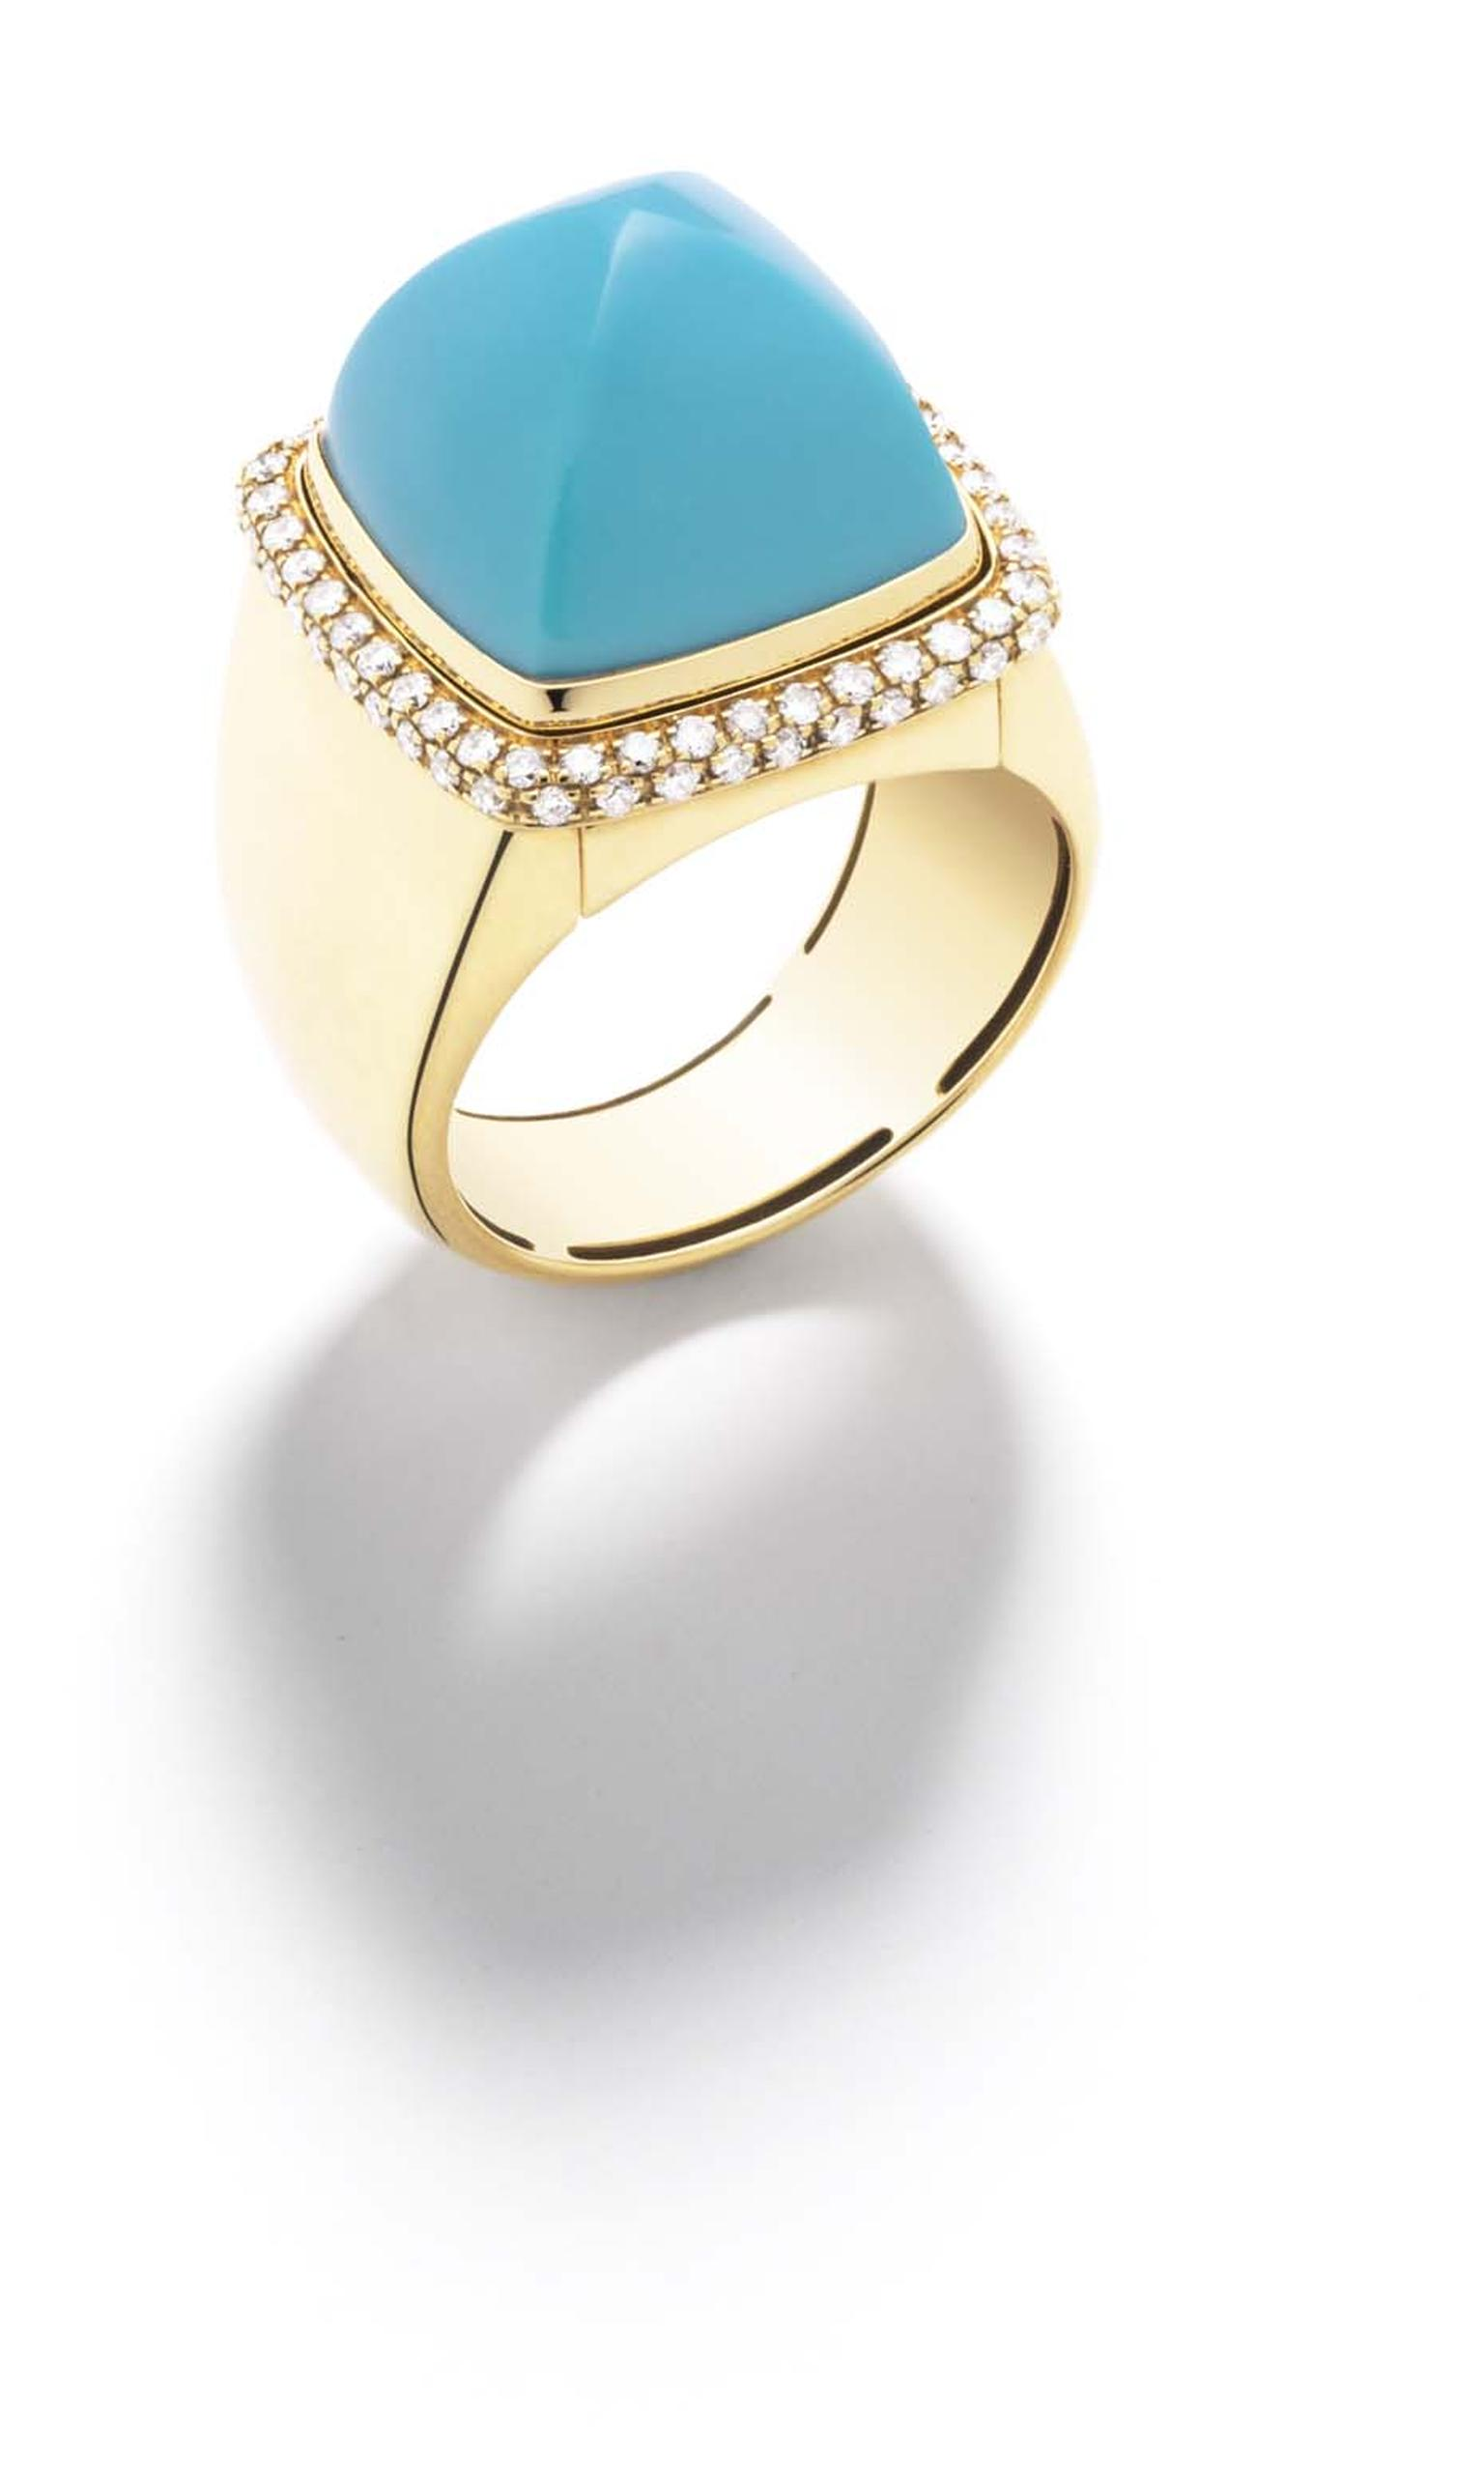 FRED Pain de Sucre ring in gold with diamonds, with an interchangeable turquoise cabochon.